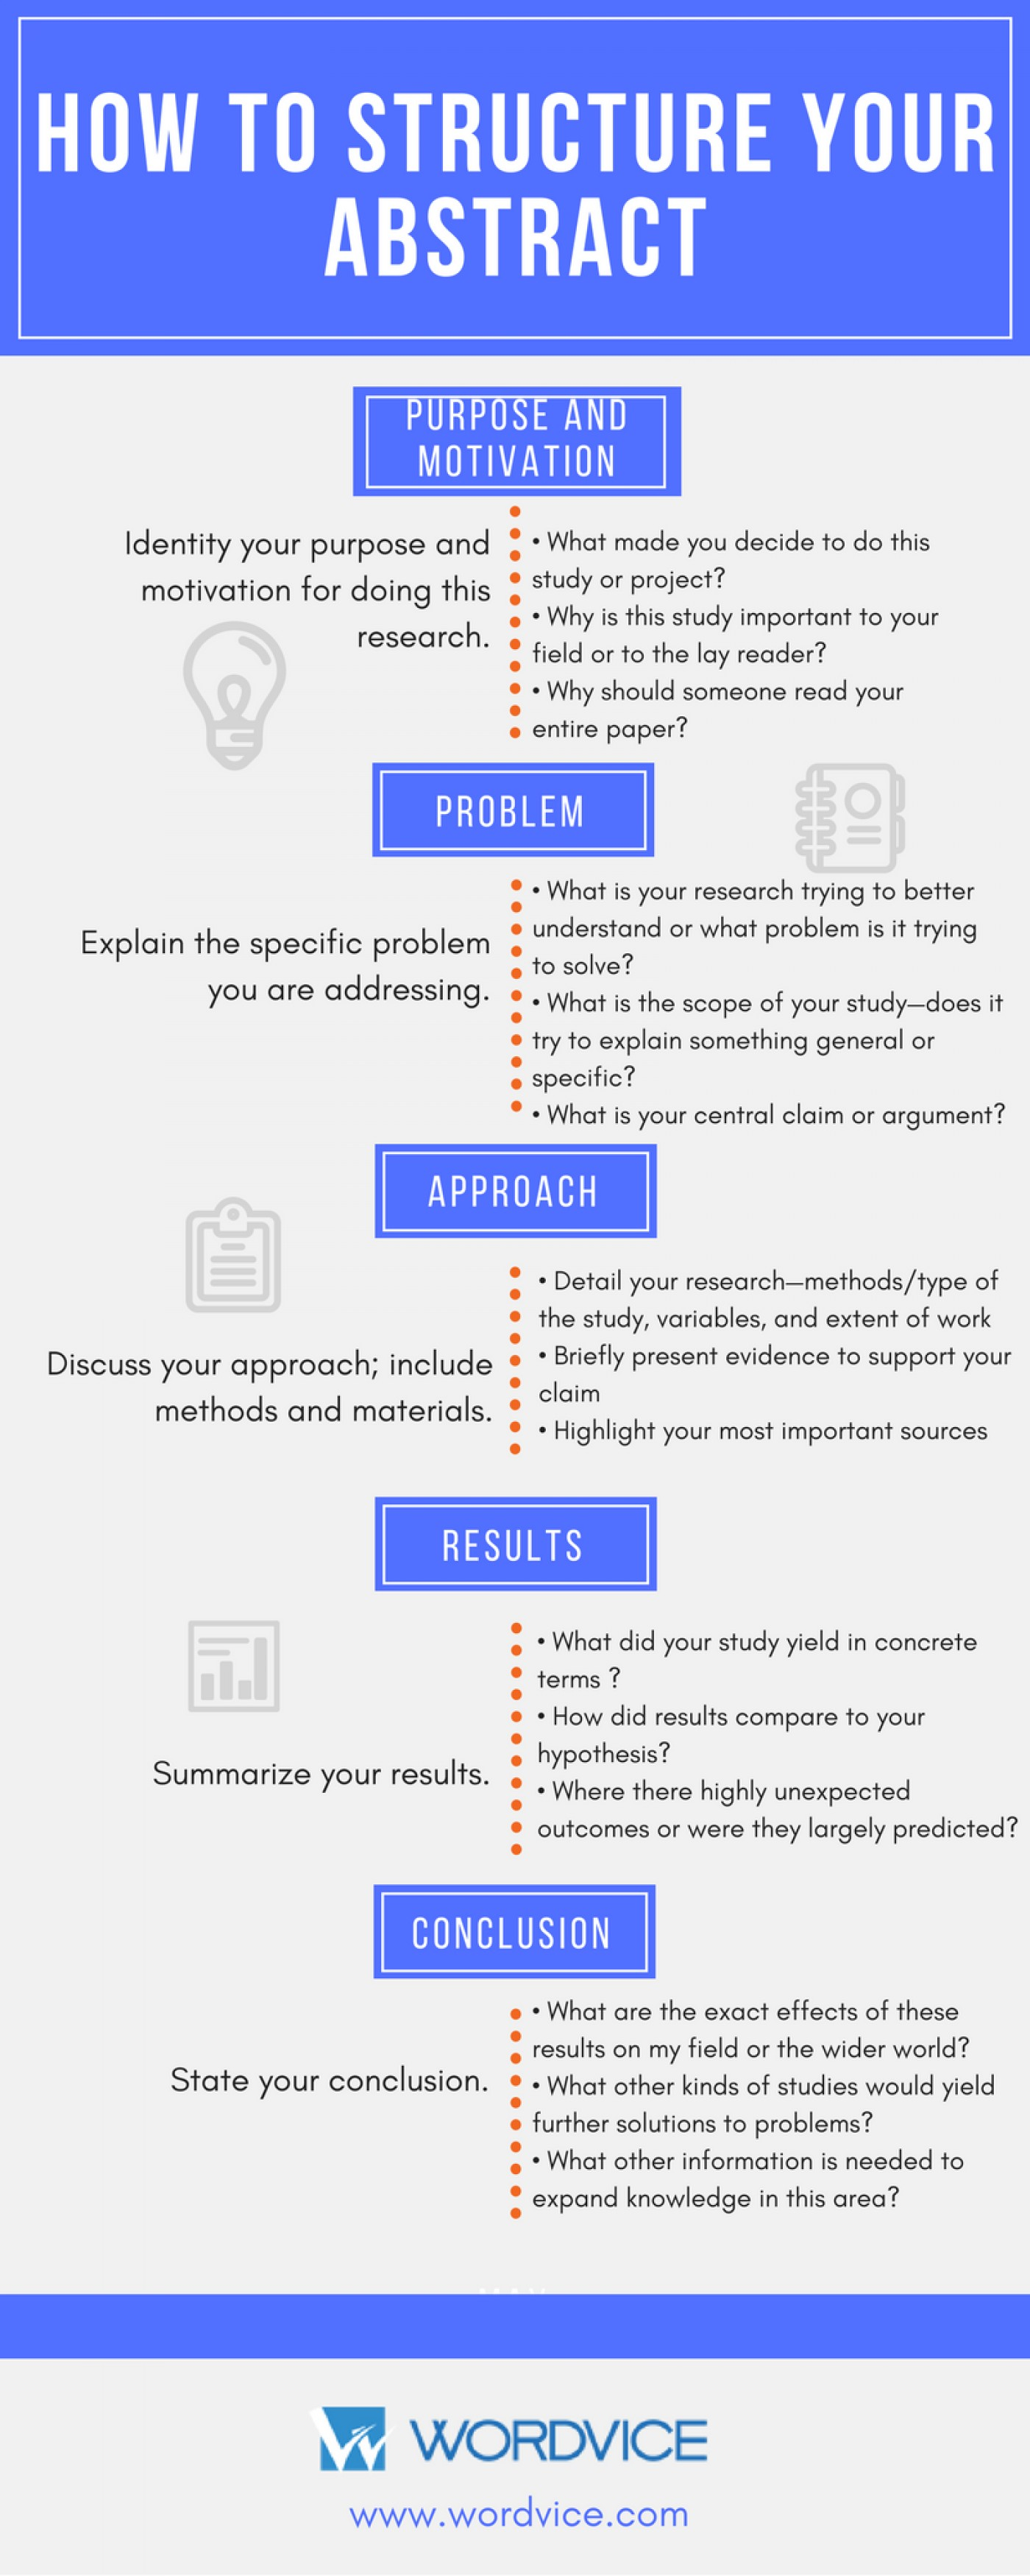 003 Research Paper Abstract How To Structure Your Unusual Tense Example Apa Page 1400